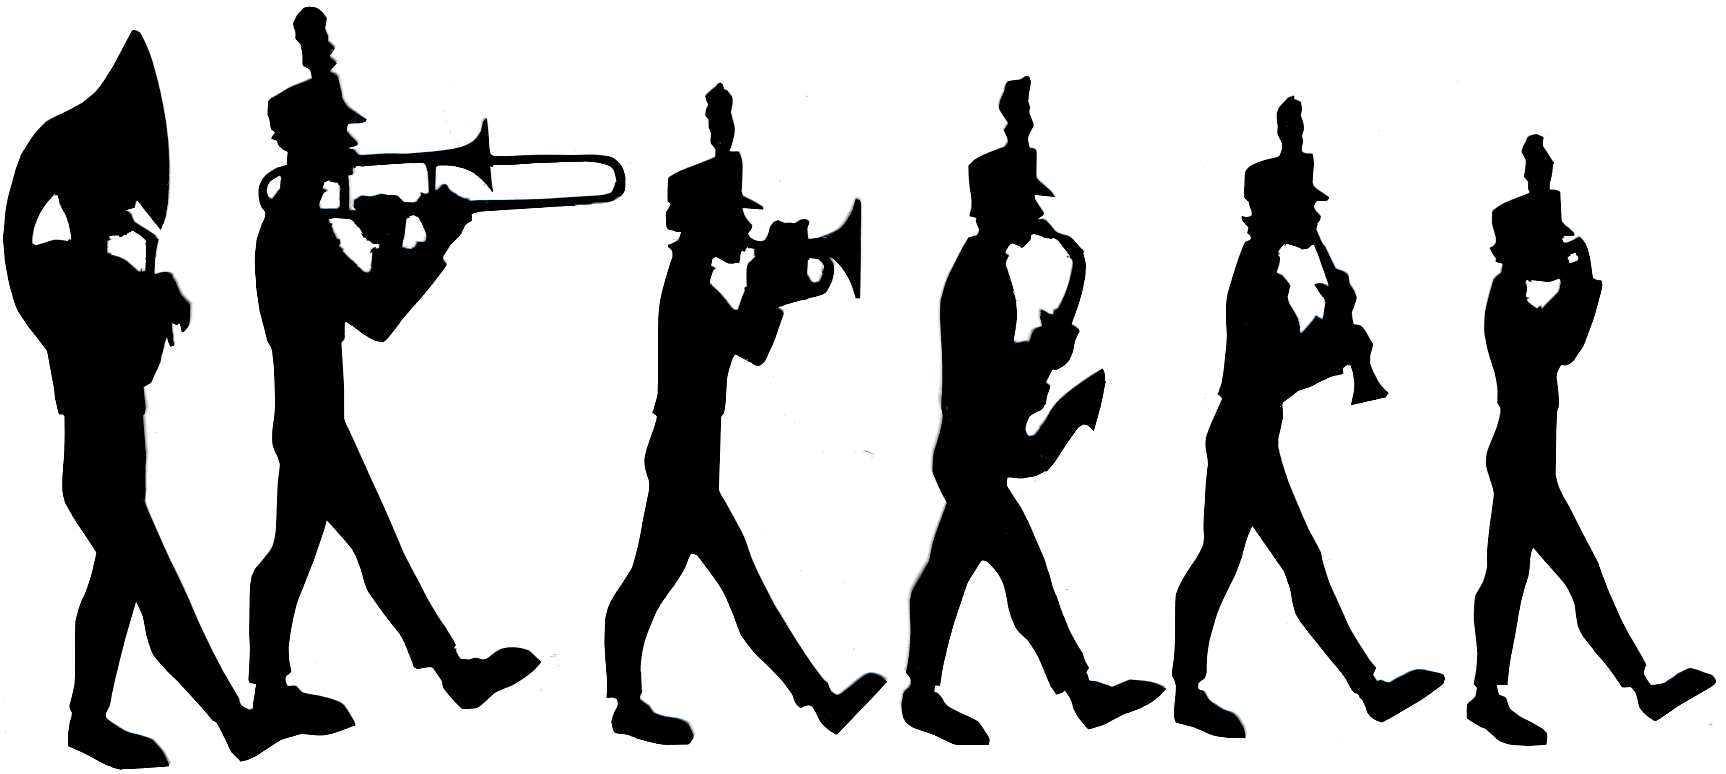 18+ Marching Band Clipart | ClipartLook